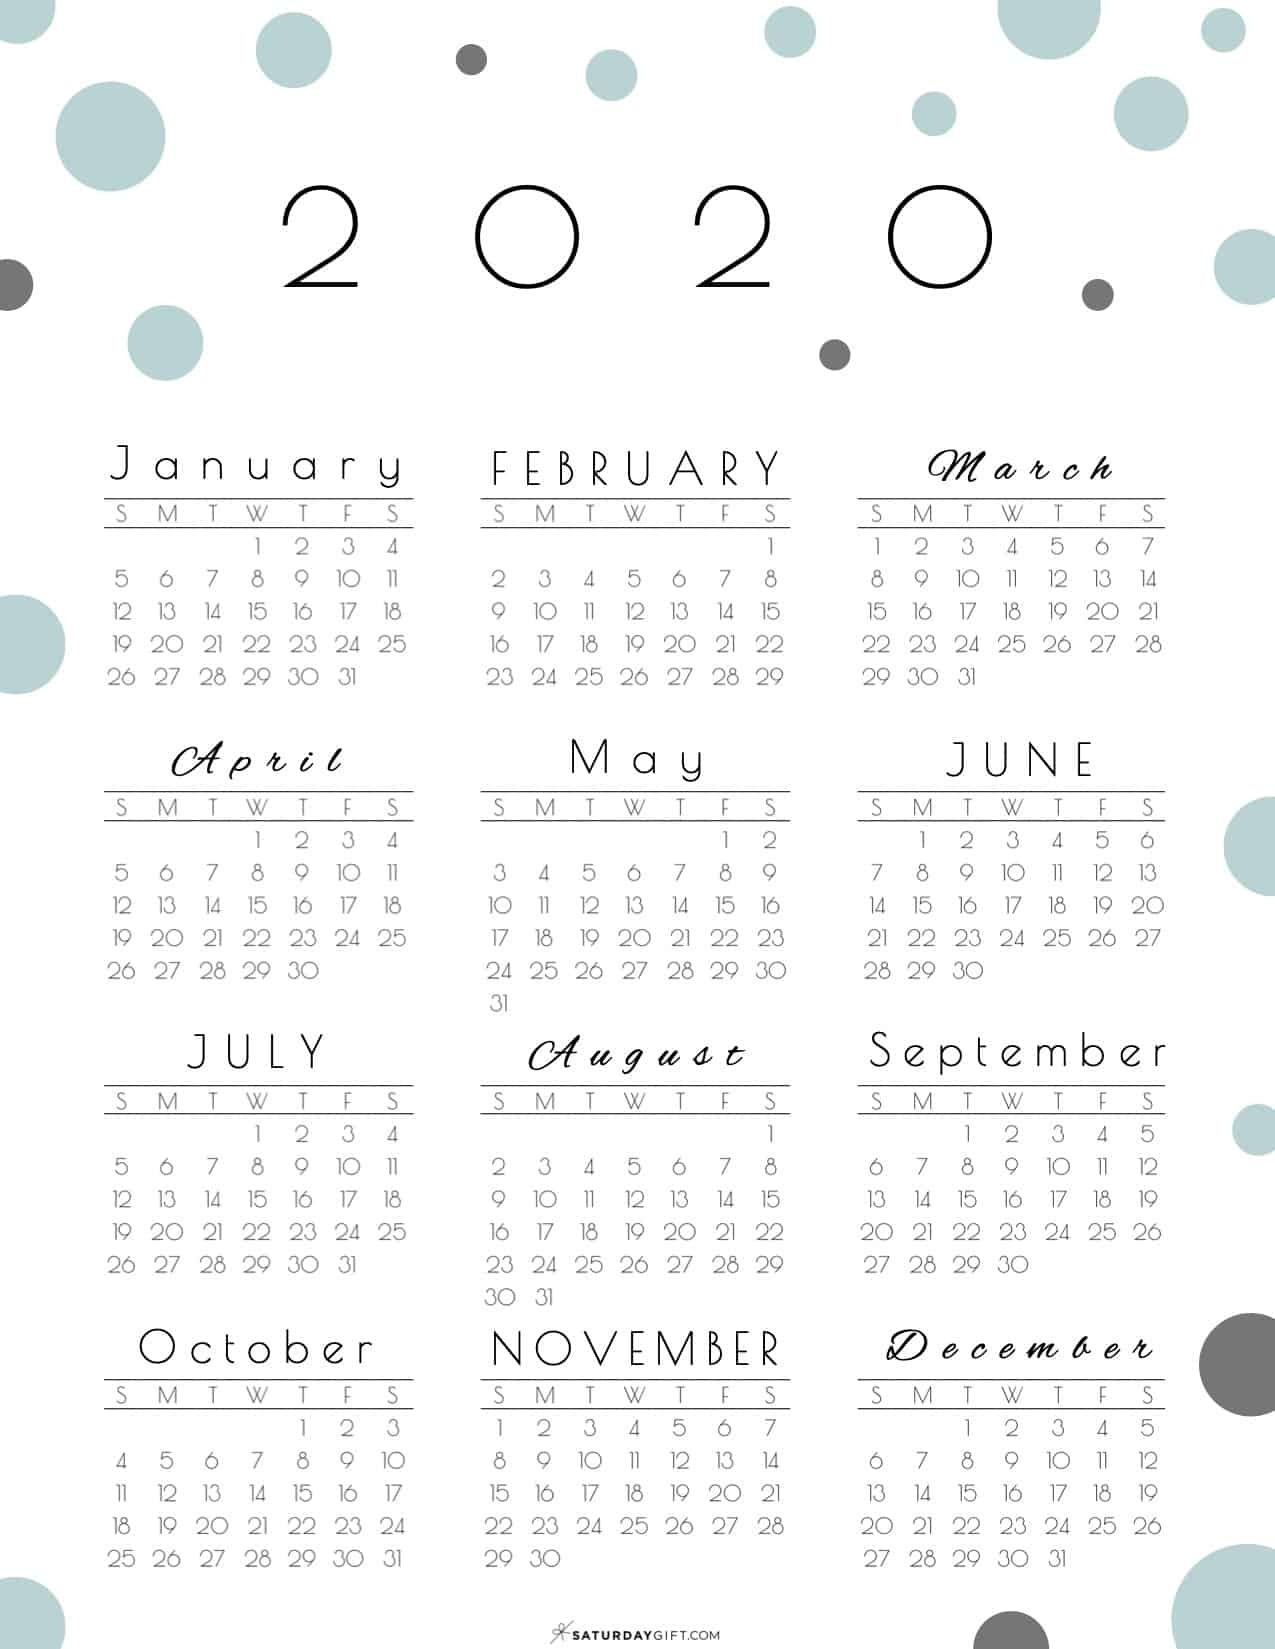 Year At A Glance Calendar 2020 - Pretty (And Free!) Printable for 2020 At A Glance Calendar